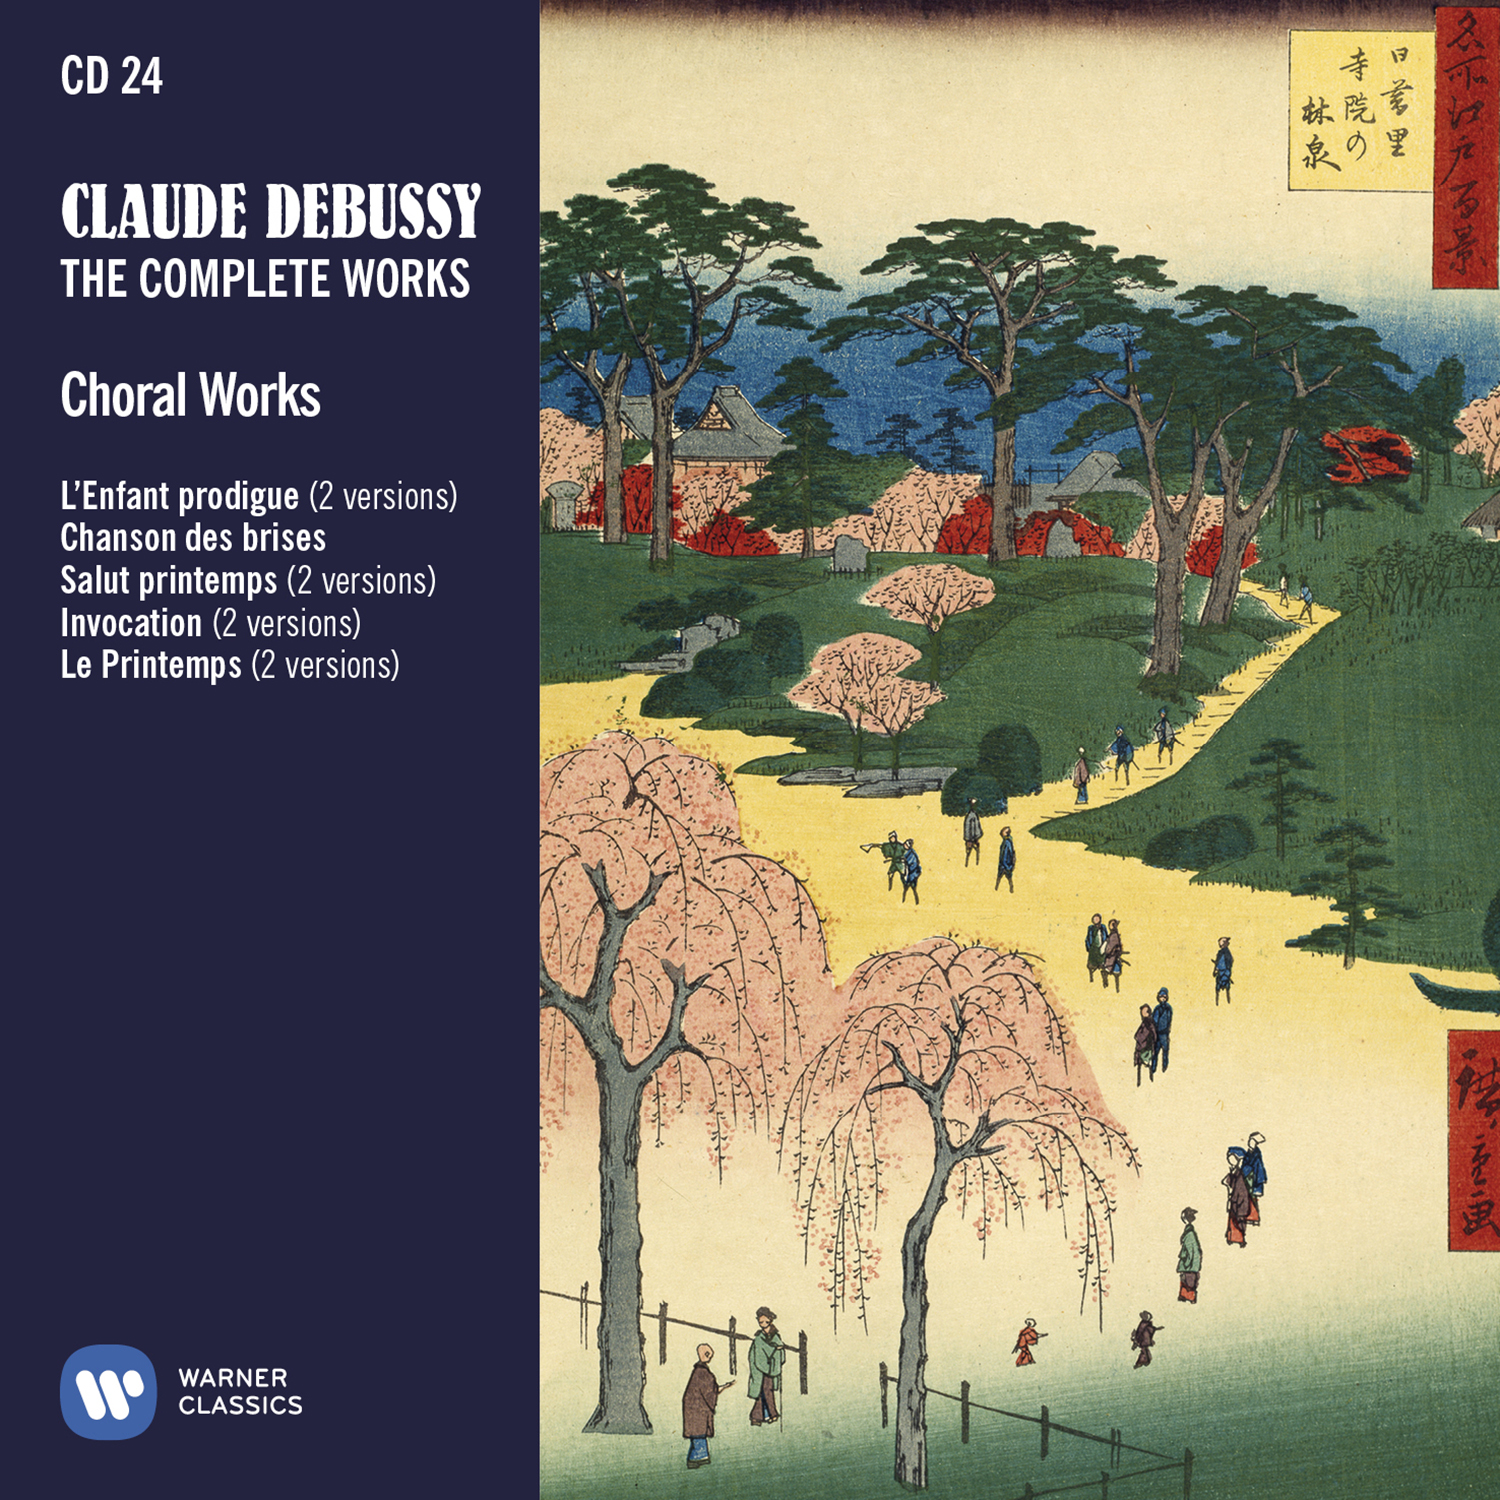 Debussy The complete works - Cover wallet CD24.jpg